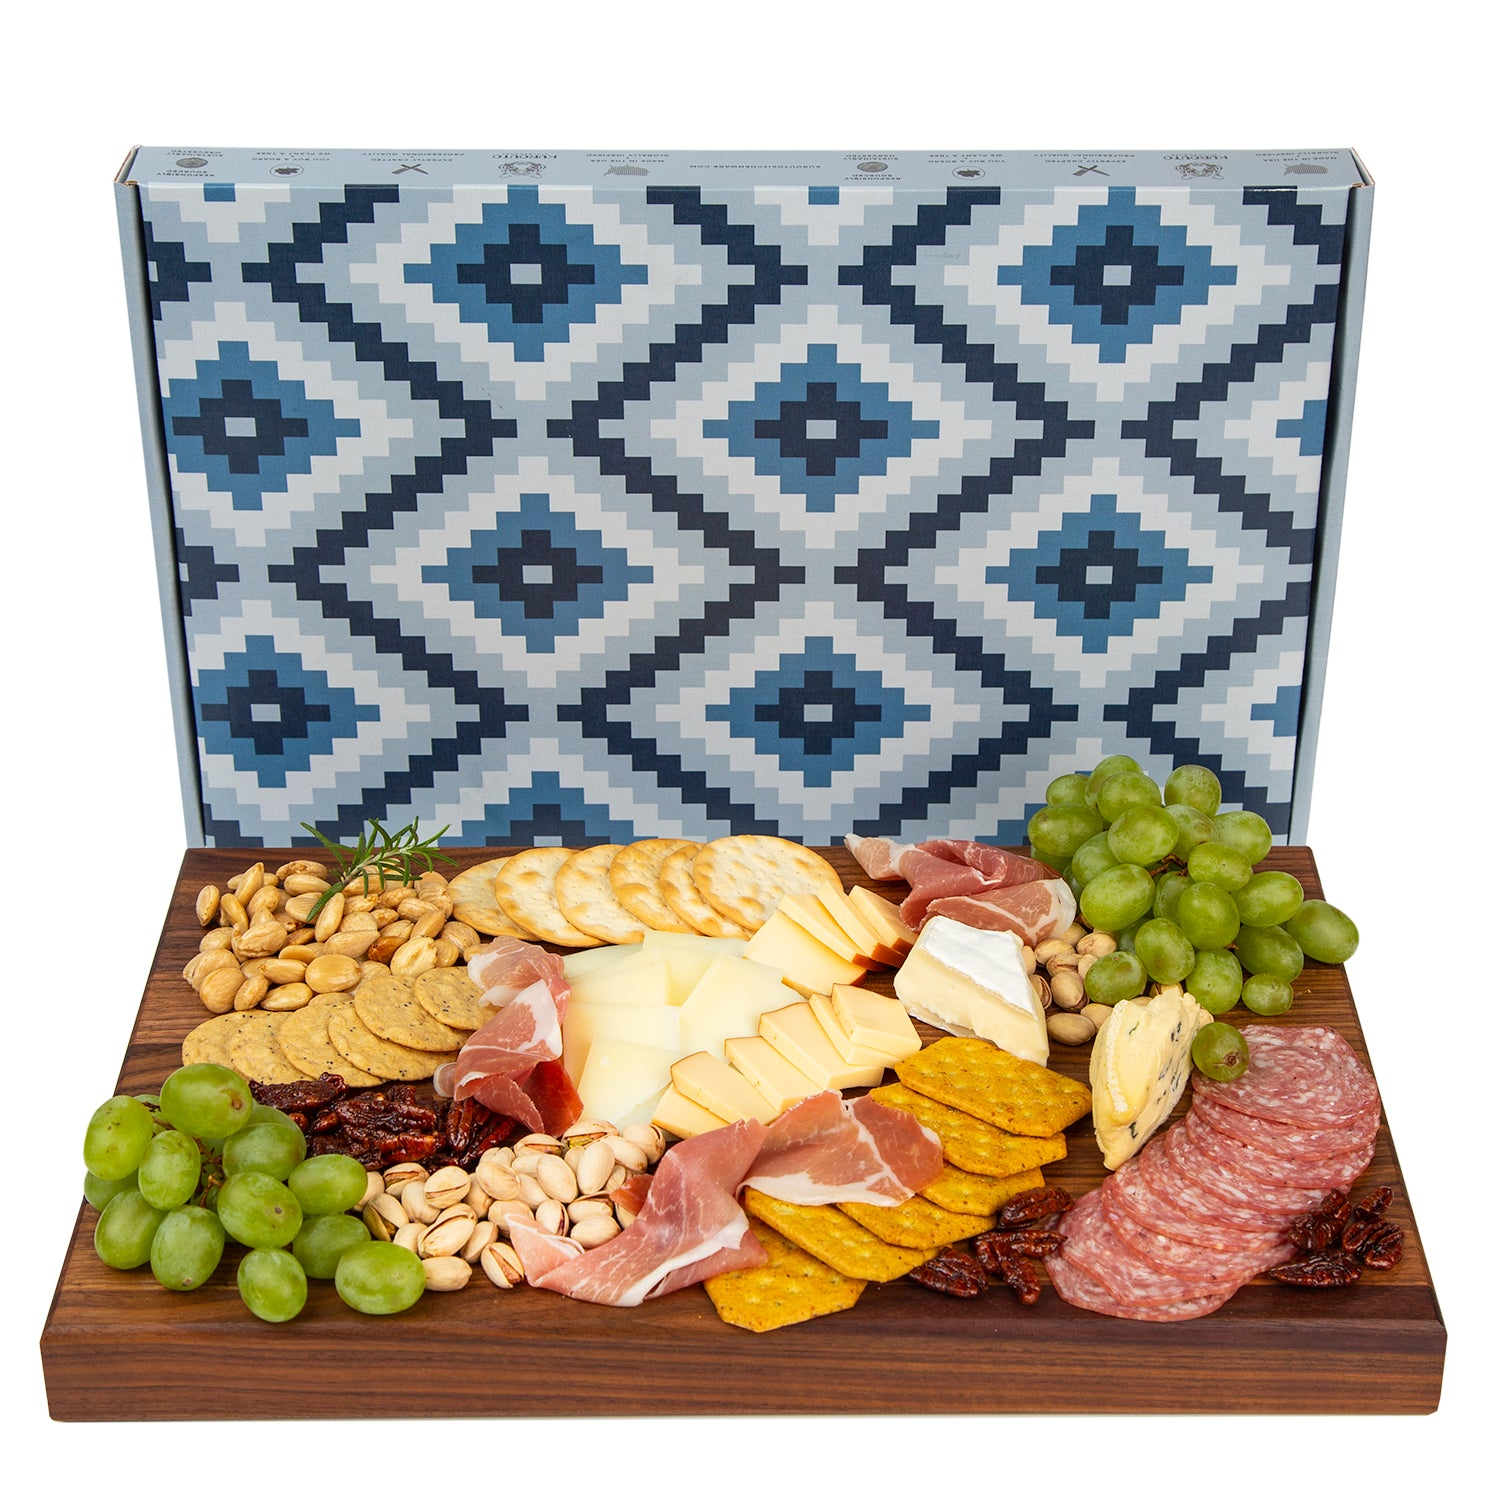 Charcuterie Board- Black Walnut Edge Grain Meat and Cheese Serving Board- Reversible- Doubles as Butcher Block- with Juice Groove and Integrated Handles - (17 x 11 x 1.5 Inches)